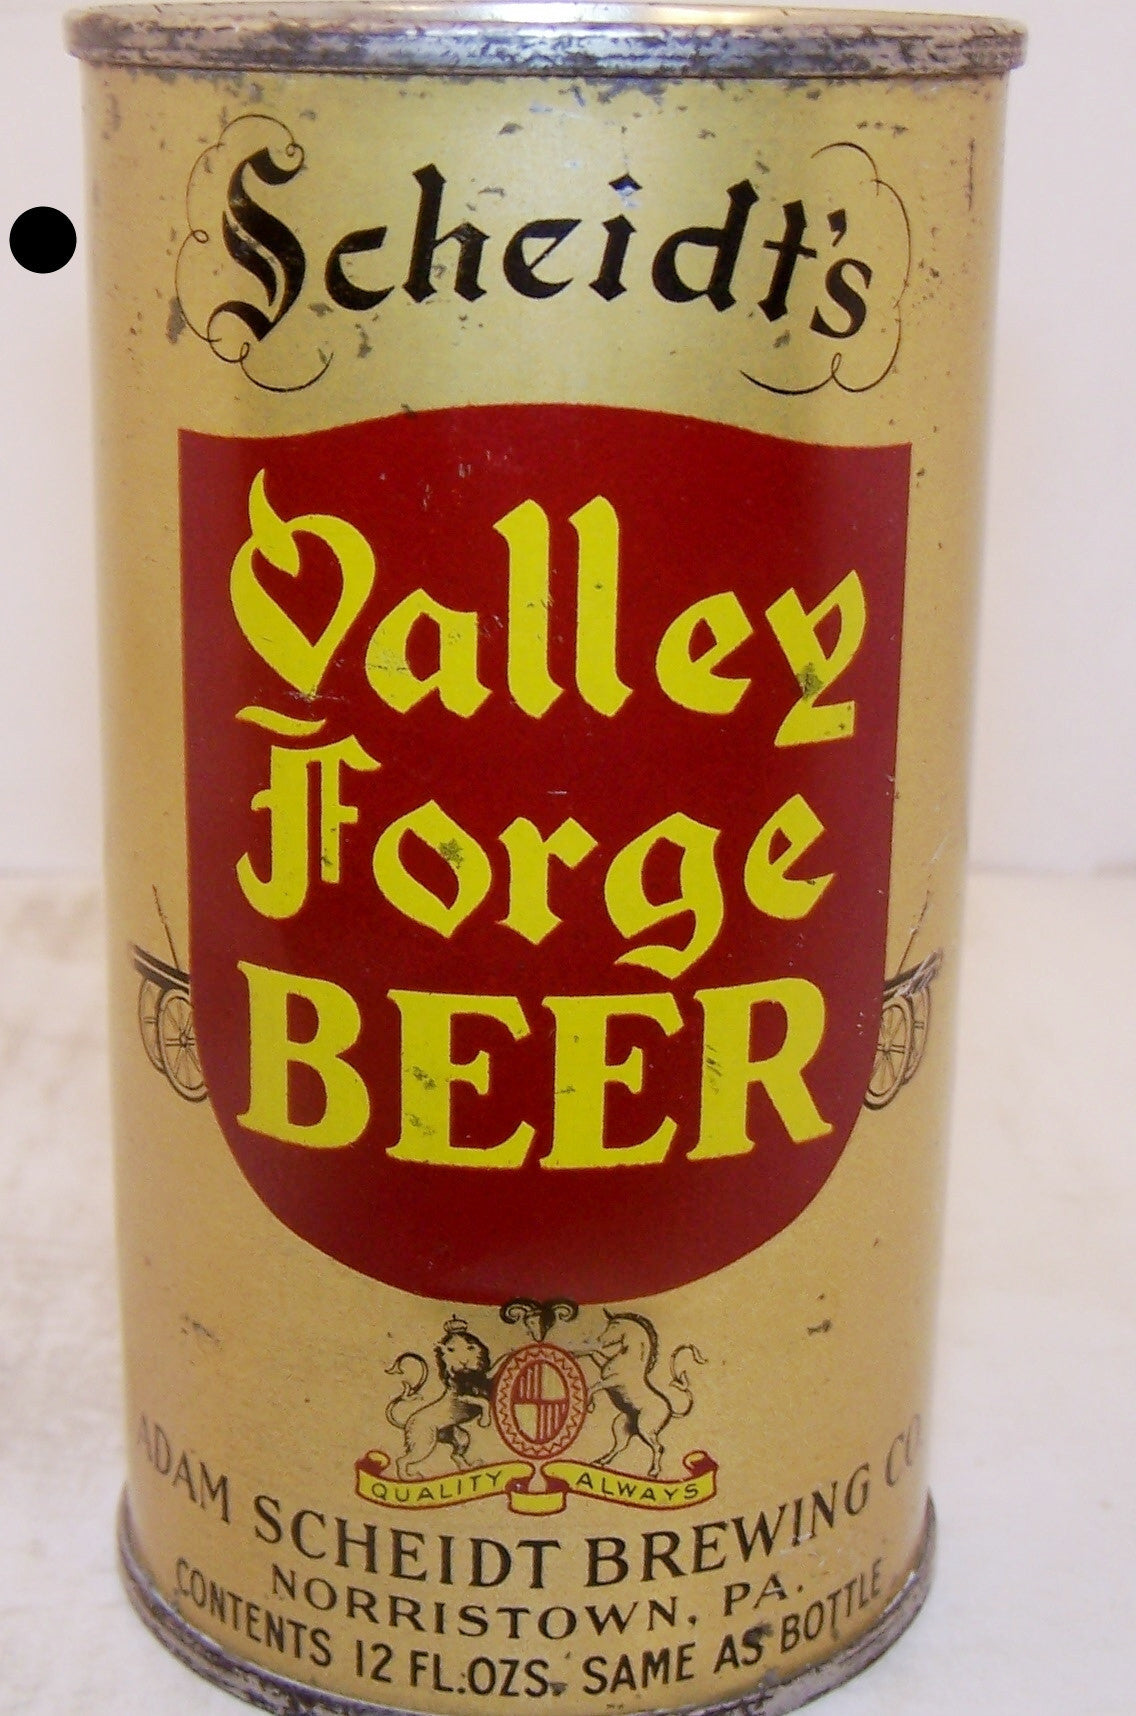 Scheidt's Valley Forge Beer, Lilek page # 837, Grade 1/1-